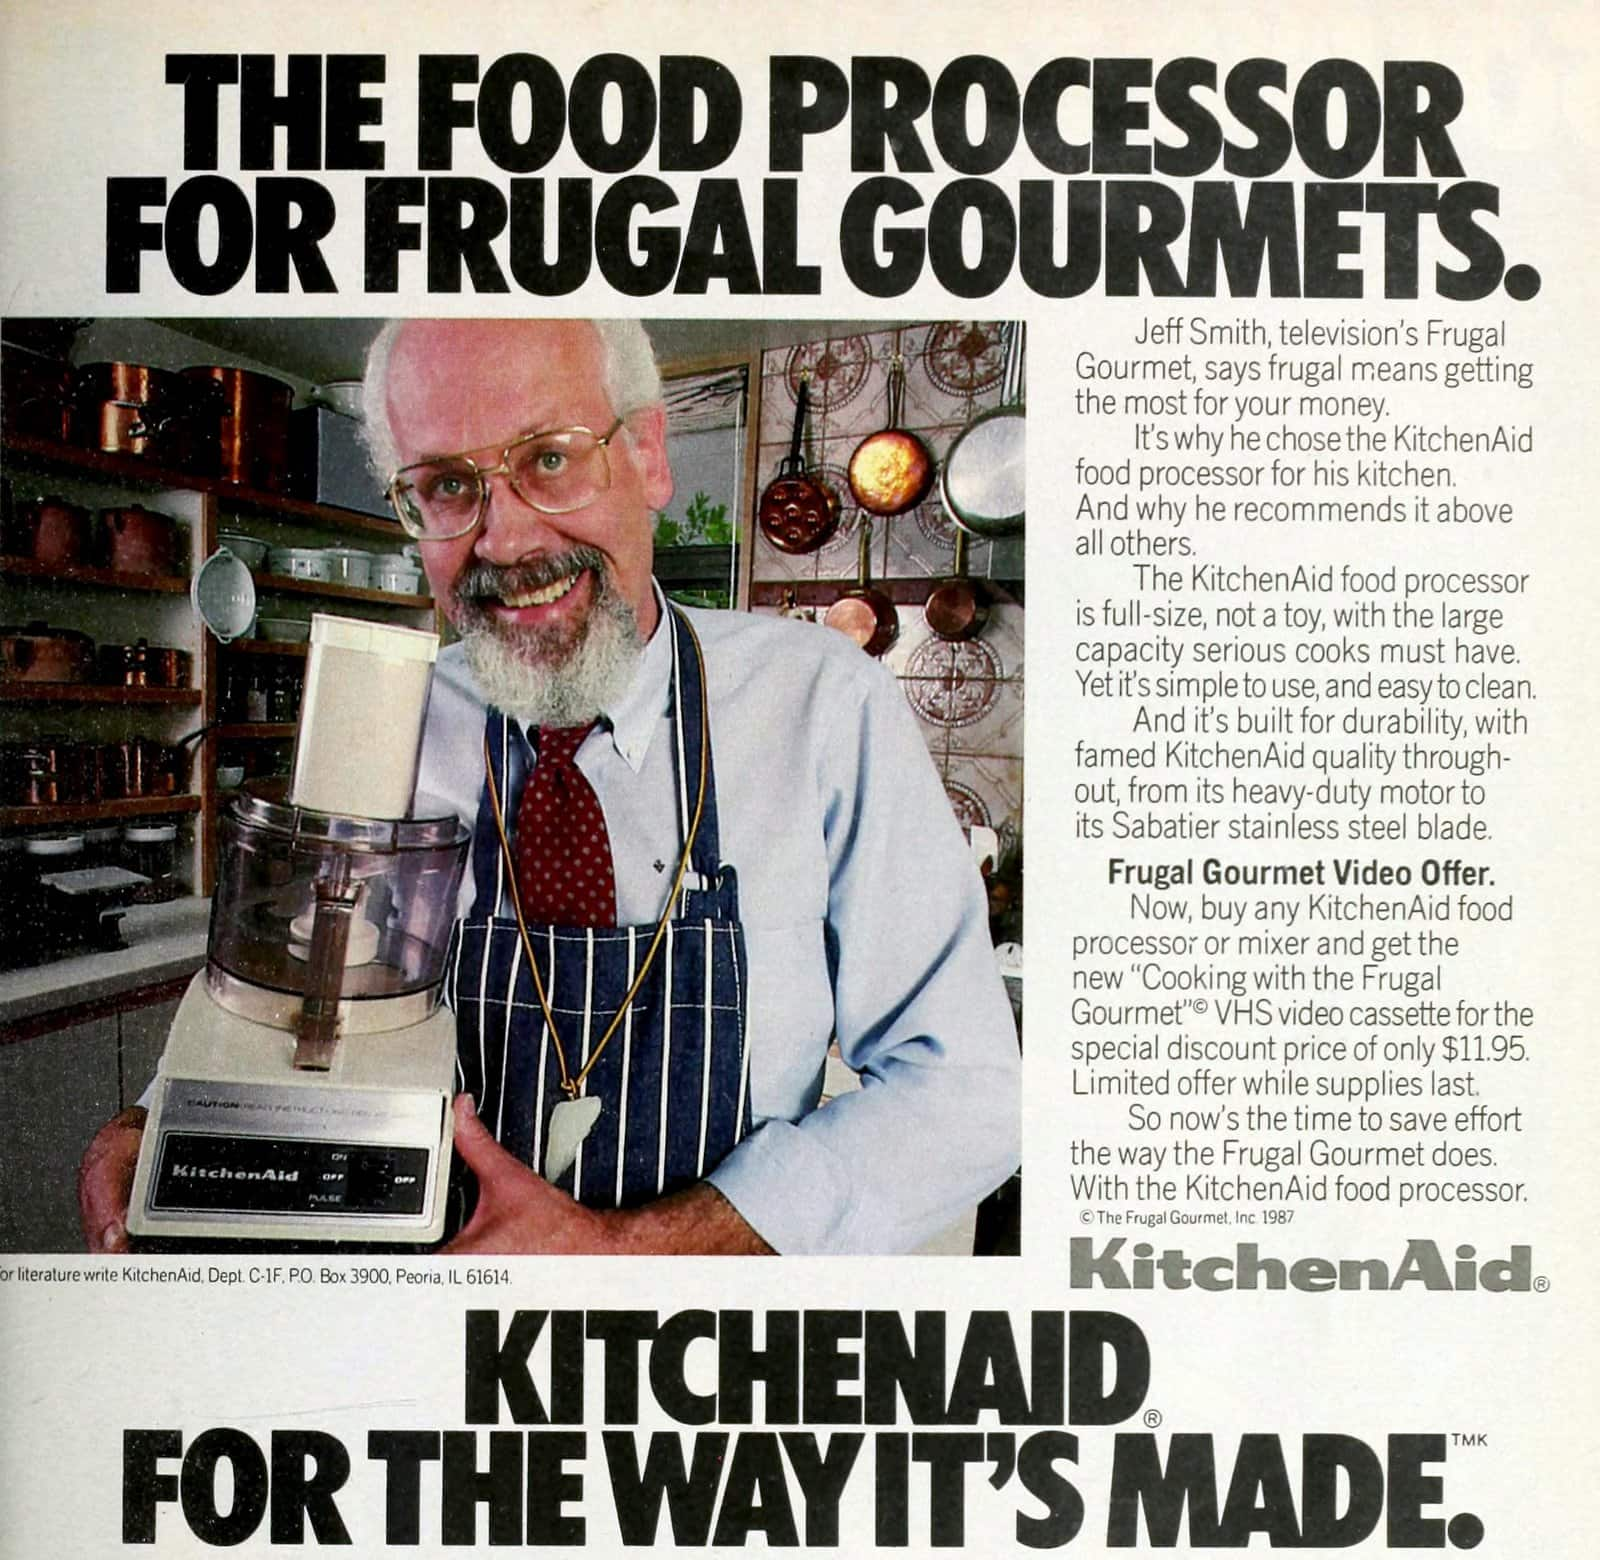 Kitchenaid 1980s food processor with The Frugal Gourmet